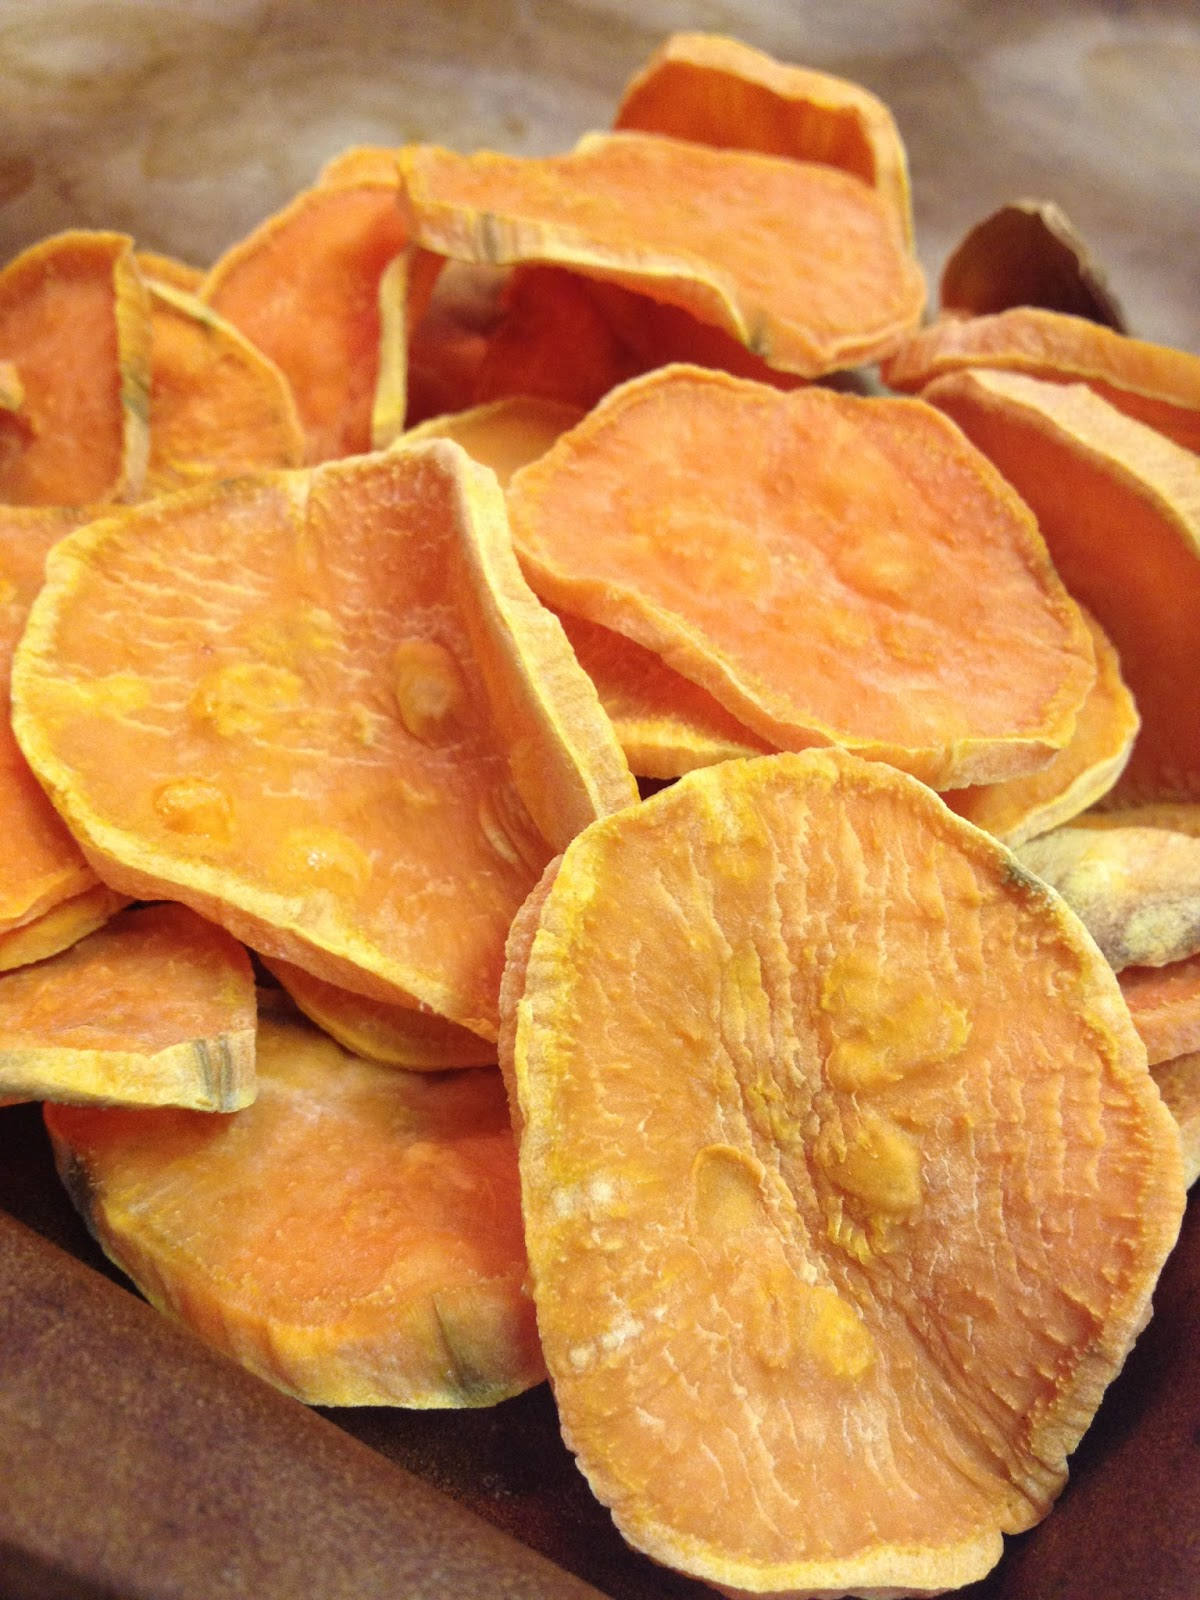 Is Dried Sweet Potato Good For Dogs